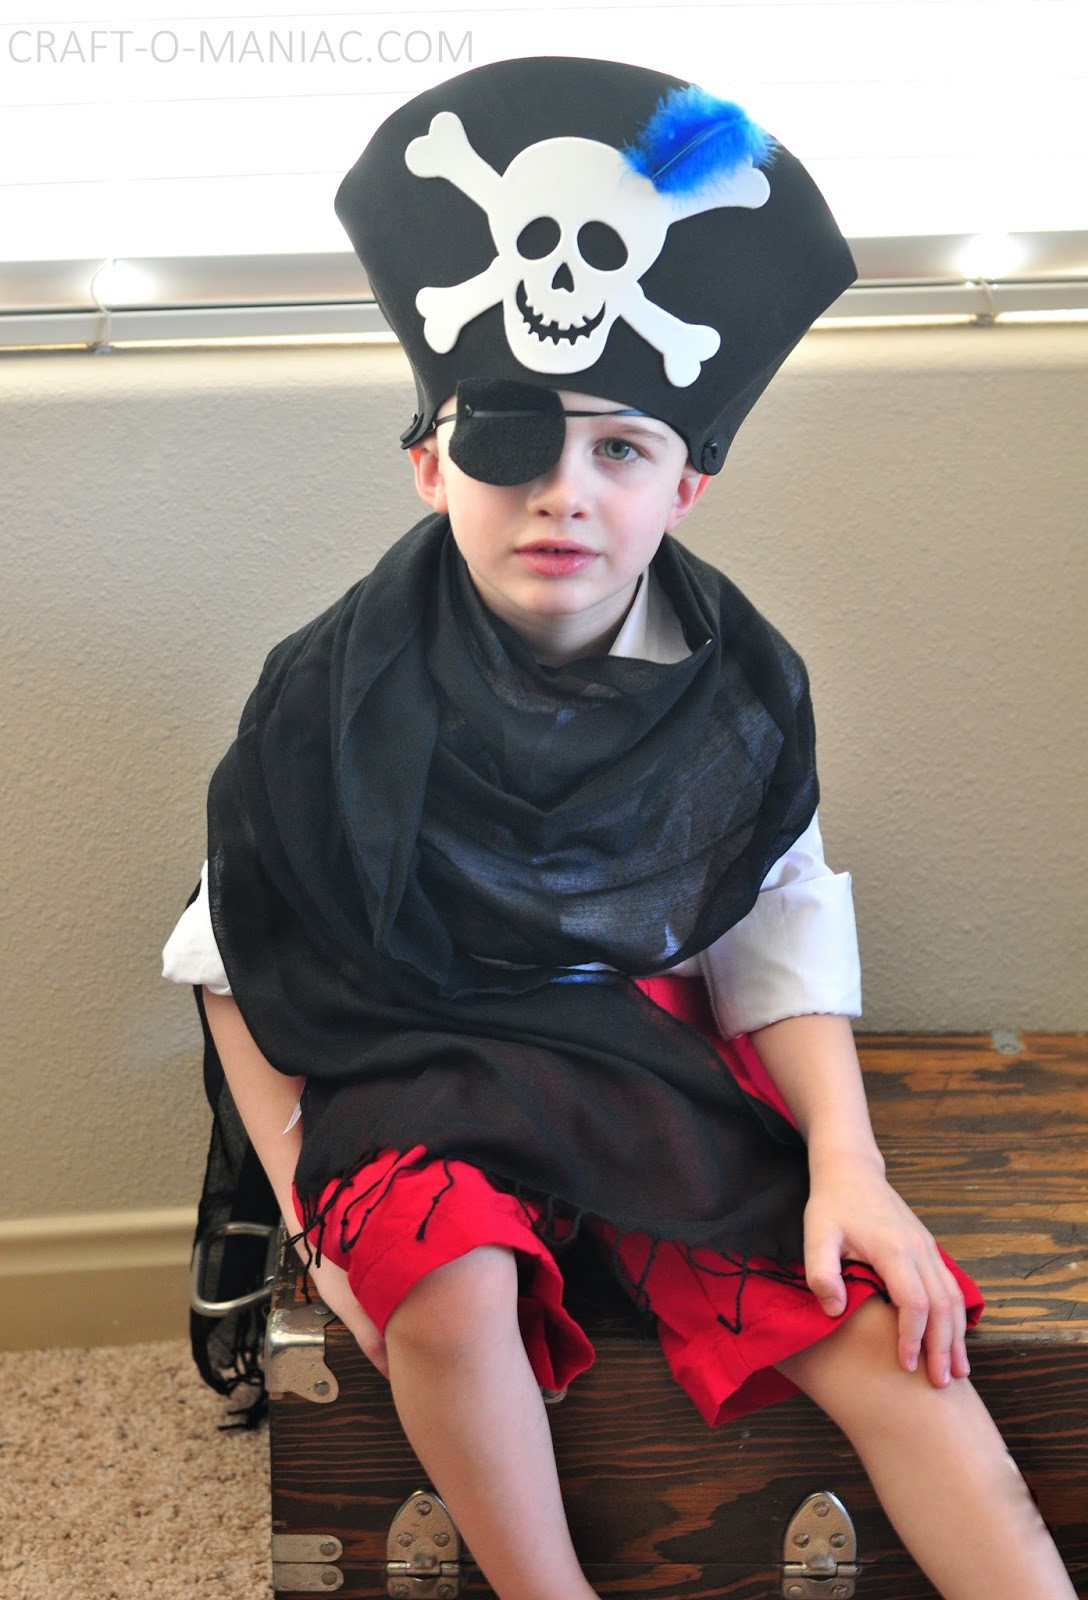 Best ideas about DIY Kids Pirate Costume . Save or Pin Kids Activity Dress Up Costumes Craft O Maniac Now.